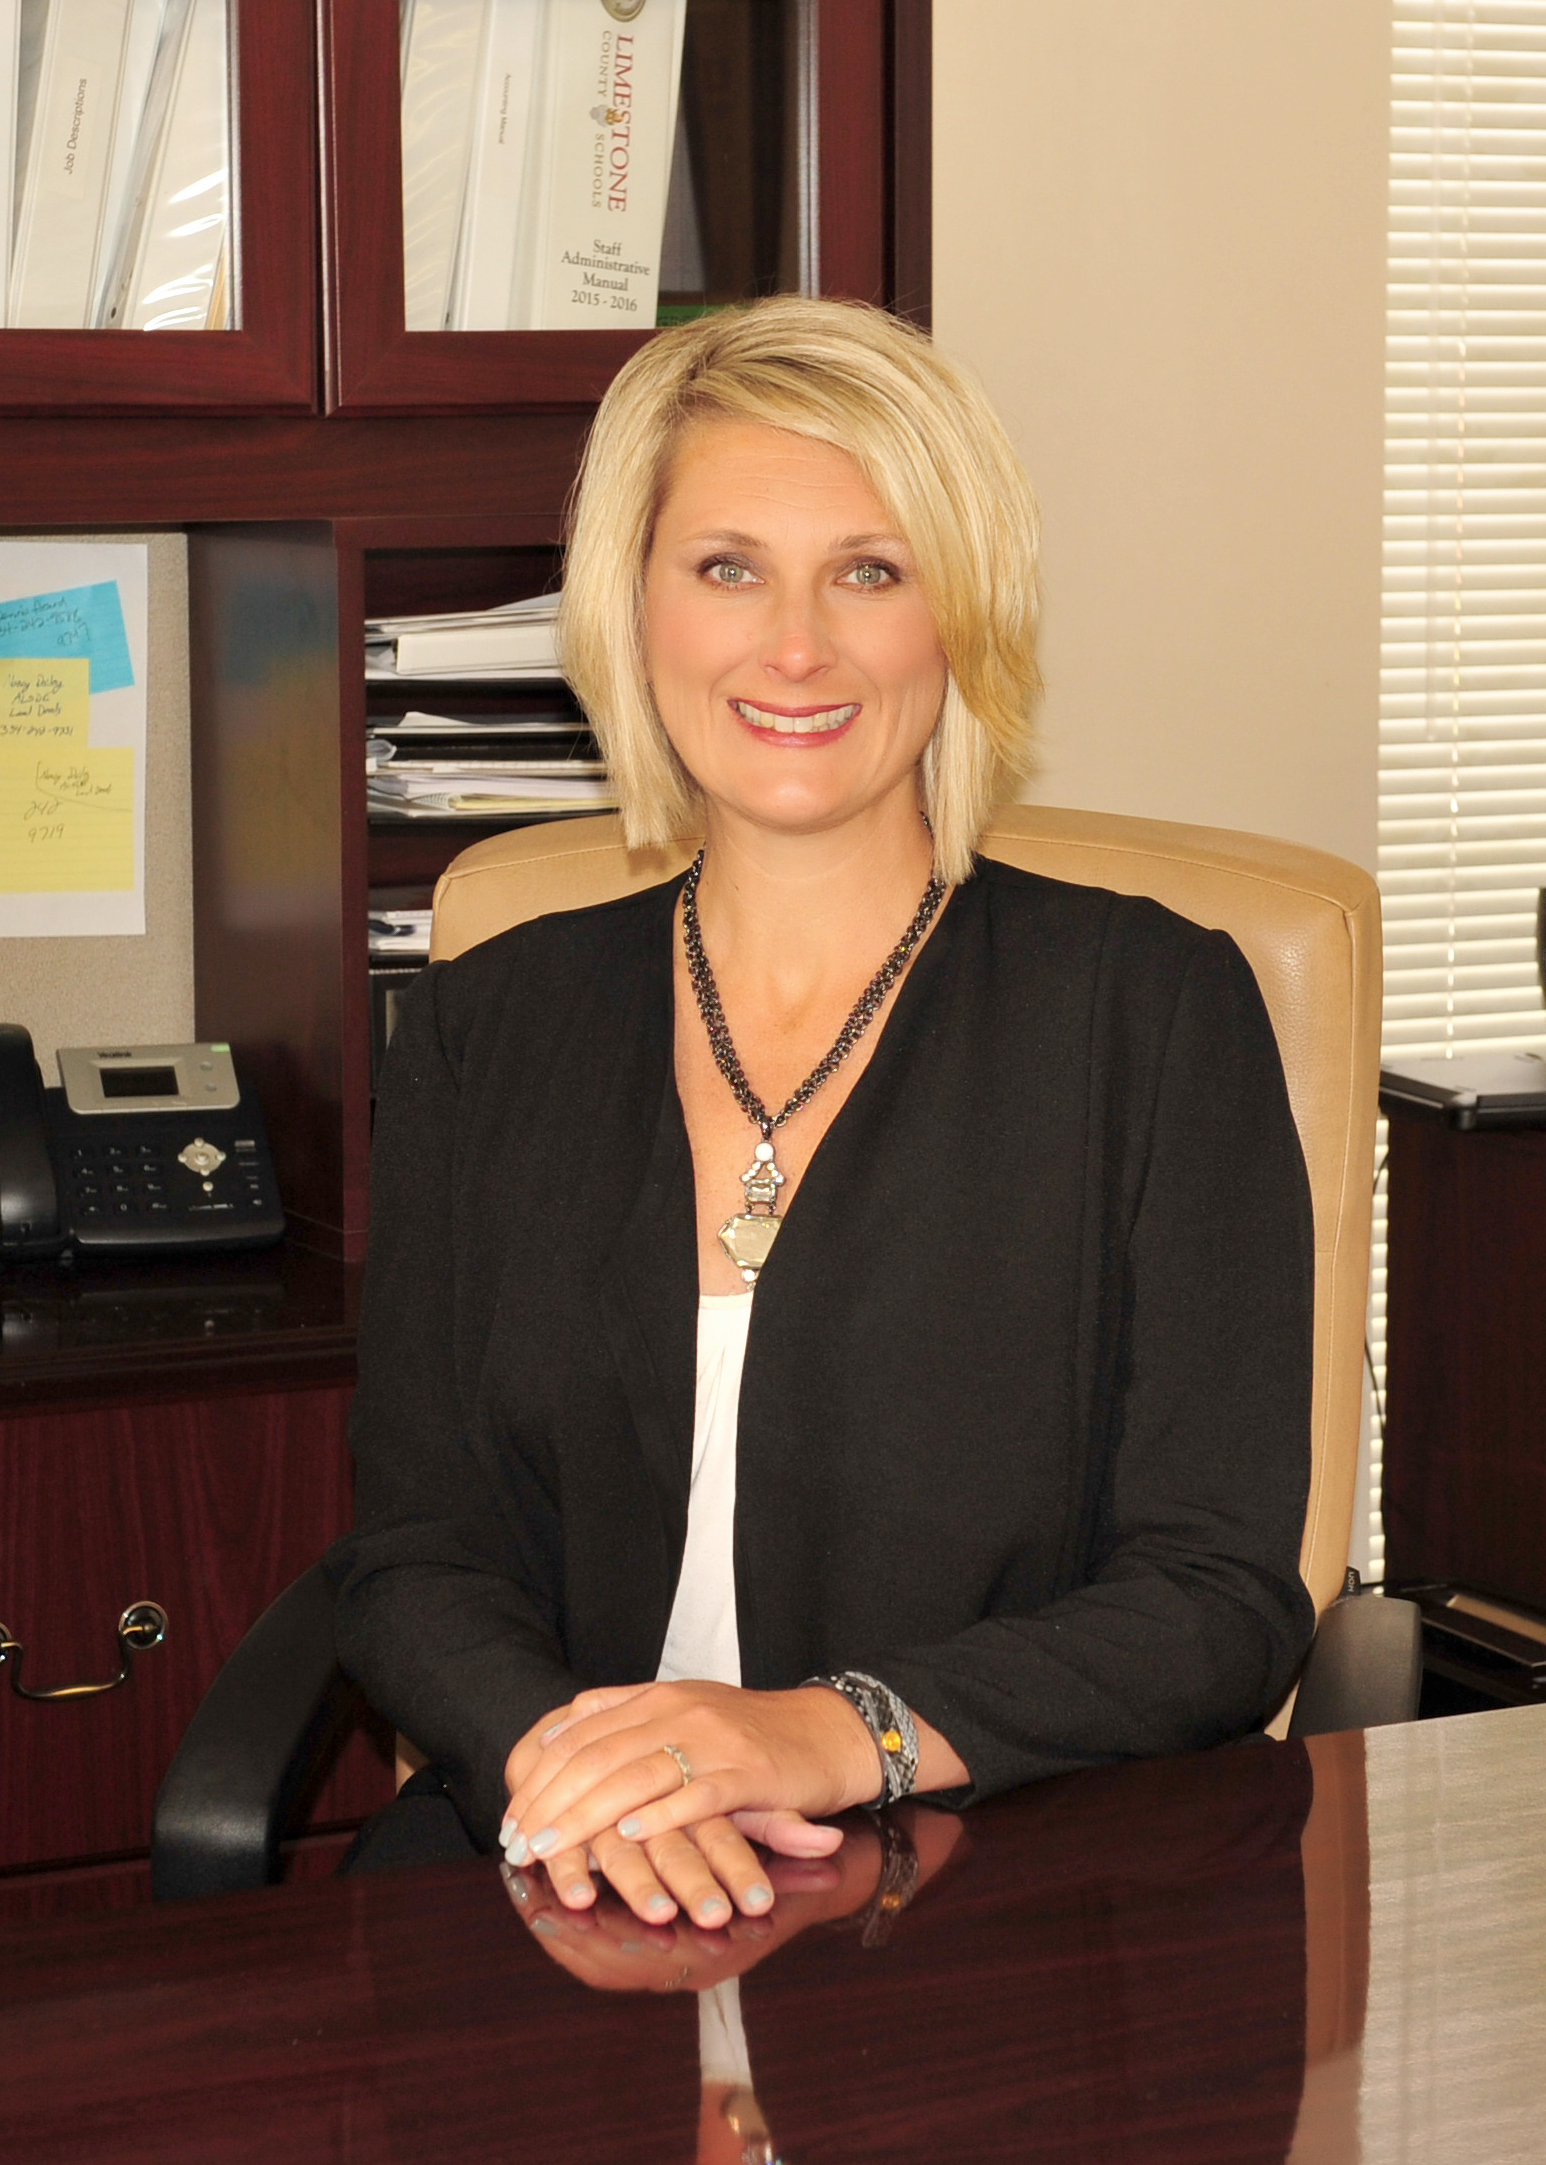 Tara Bachus, Director of Special Services